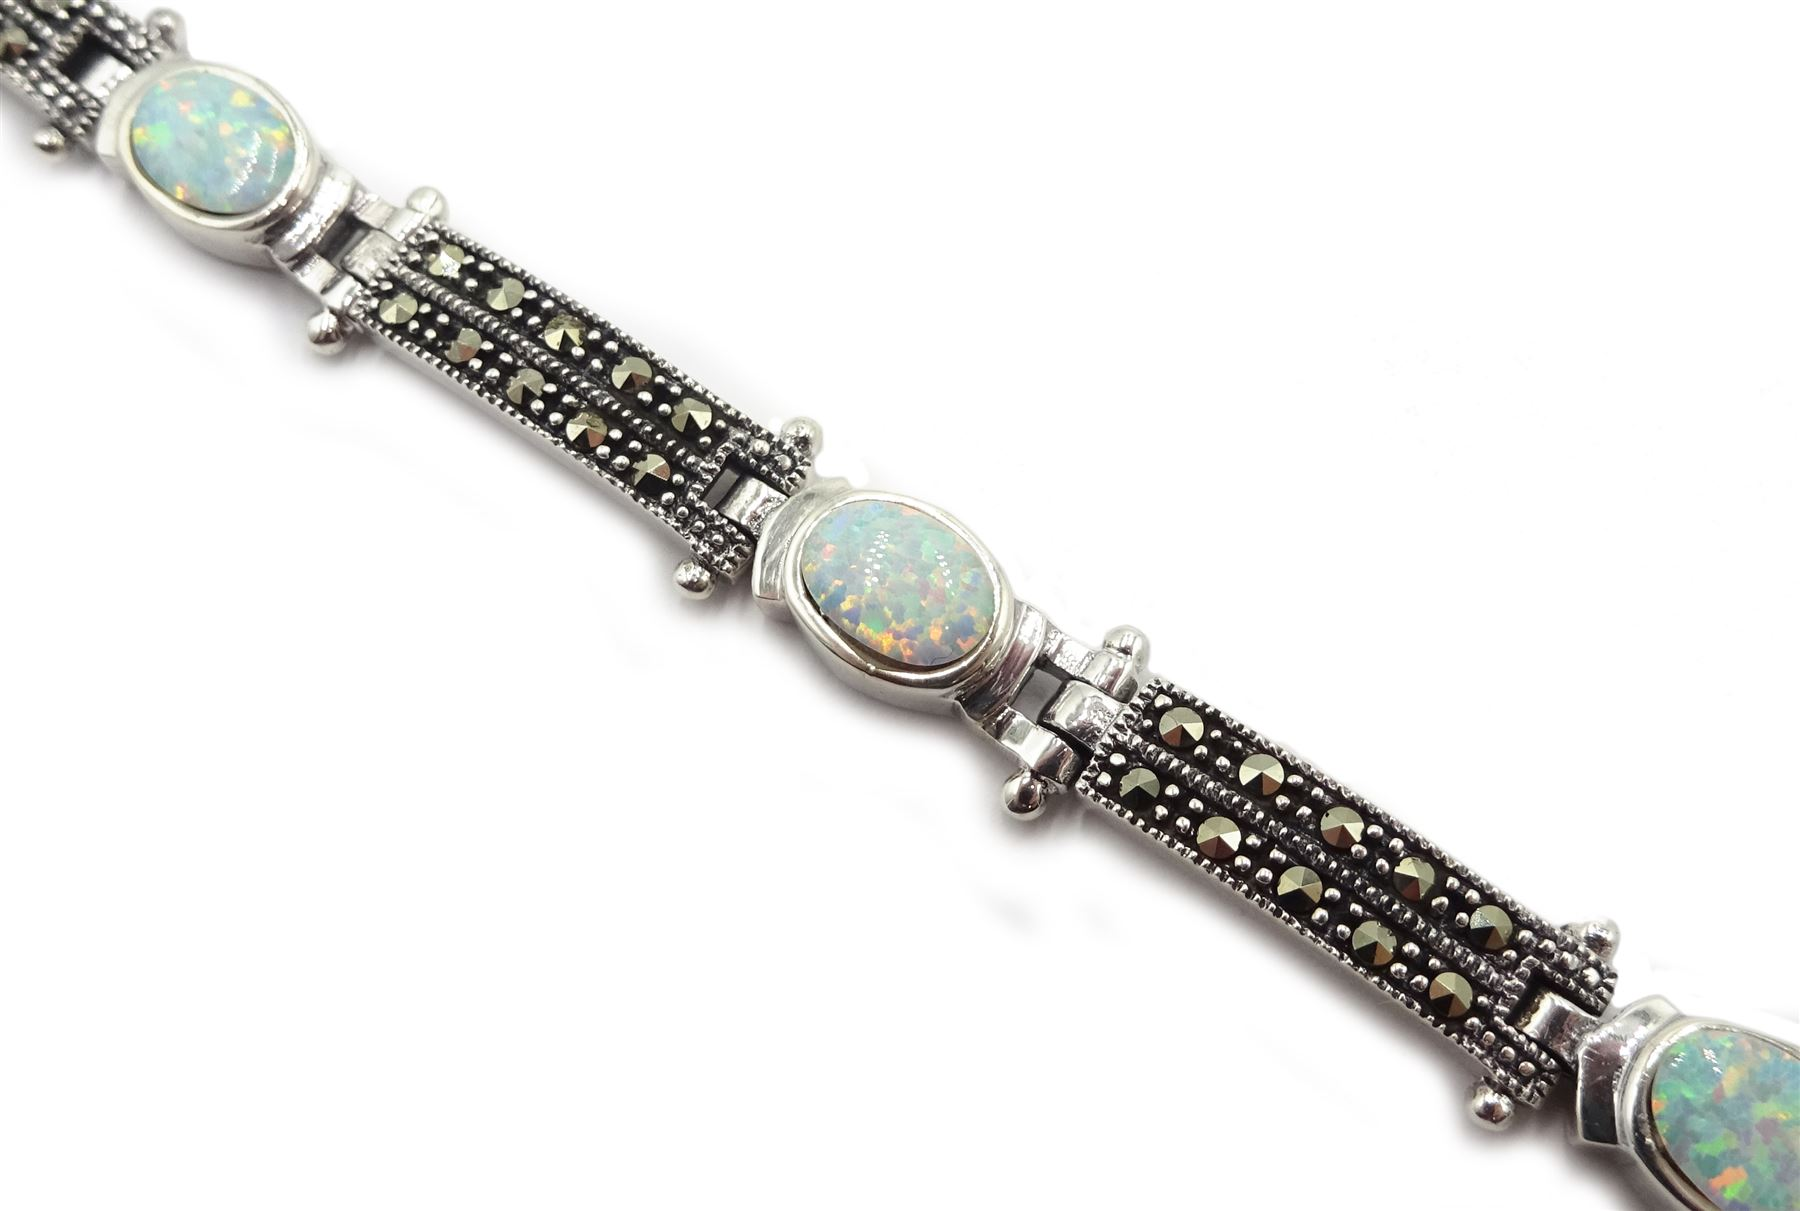 Silver opal and marcasite bracelet - Image 3 of 3